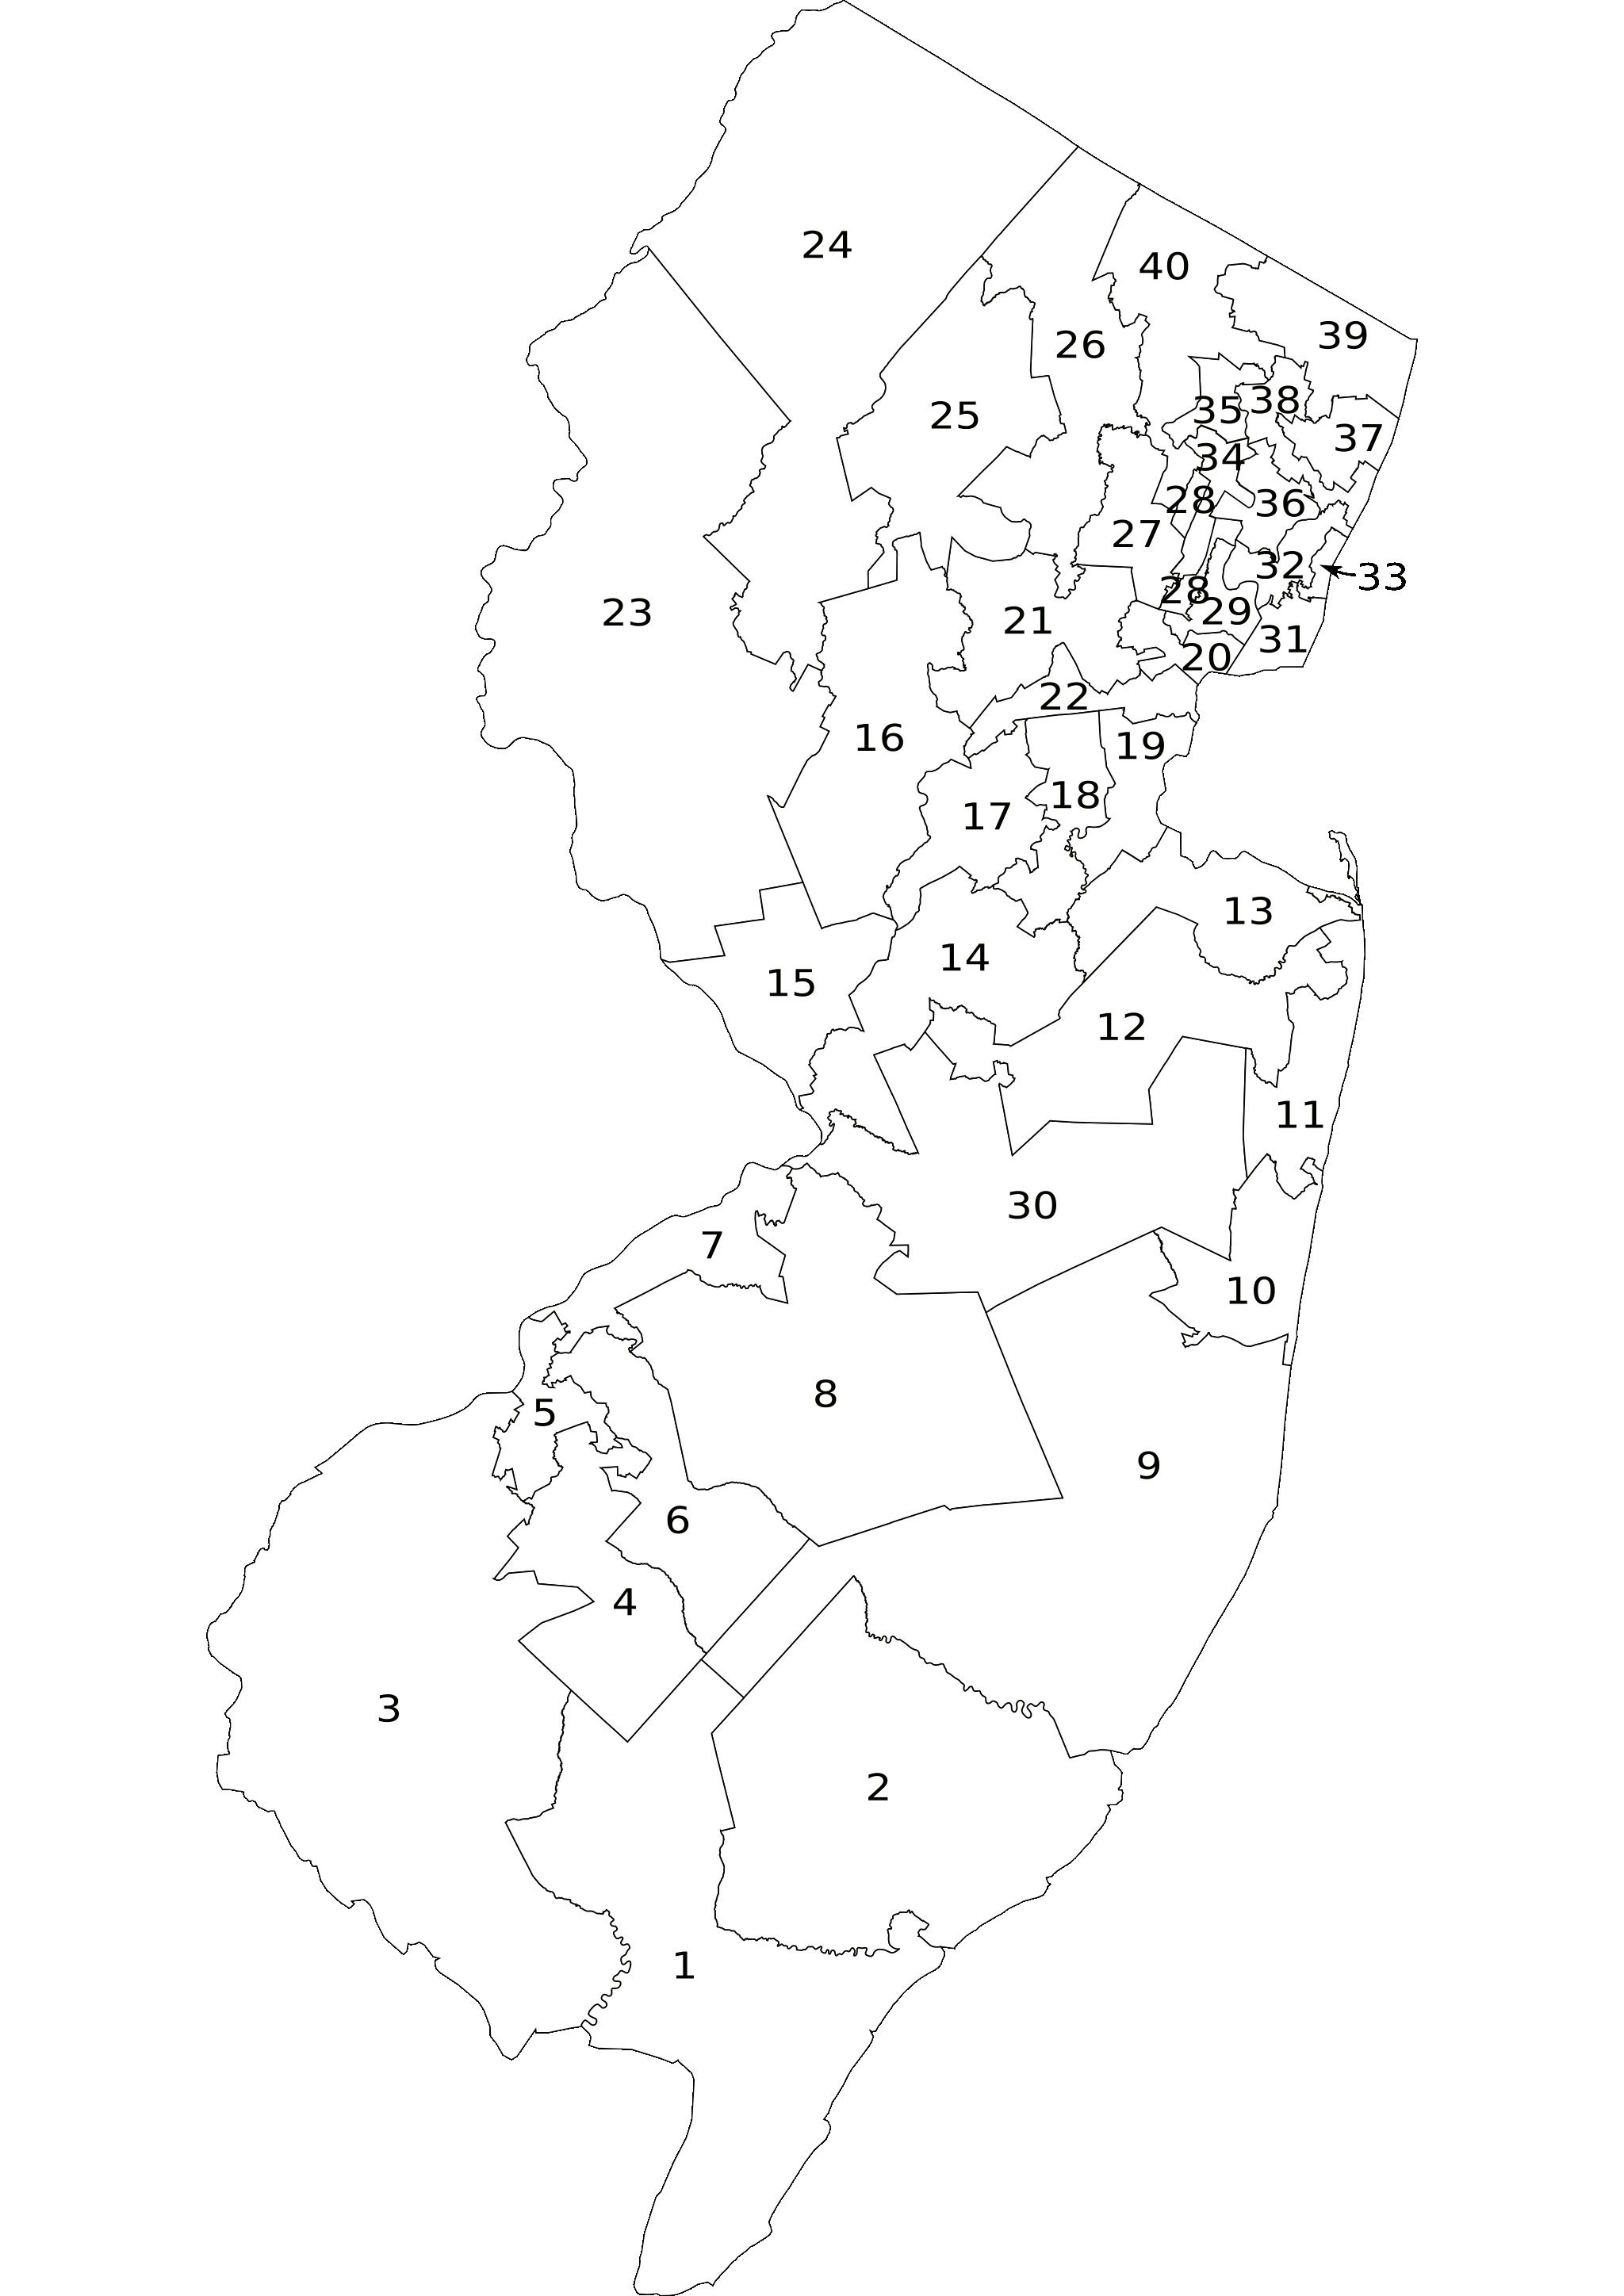 New jersey map png. File legislative districts numbered